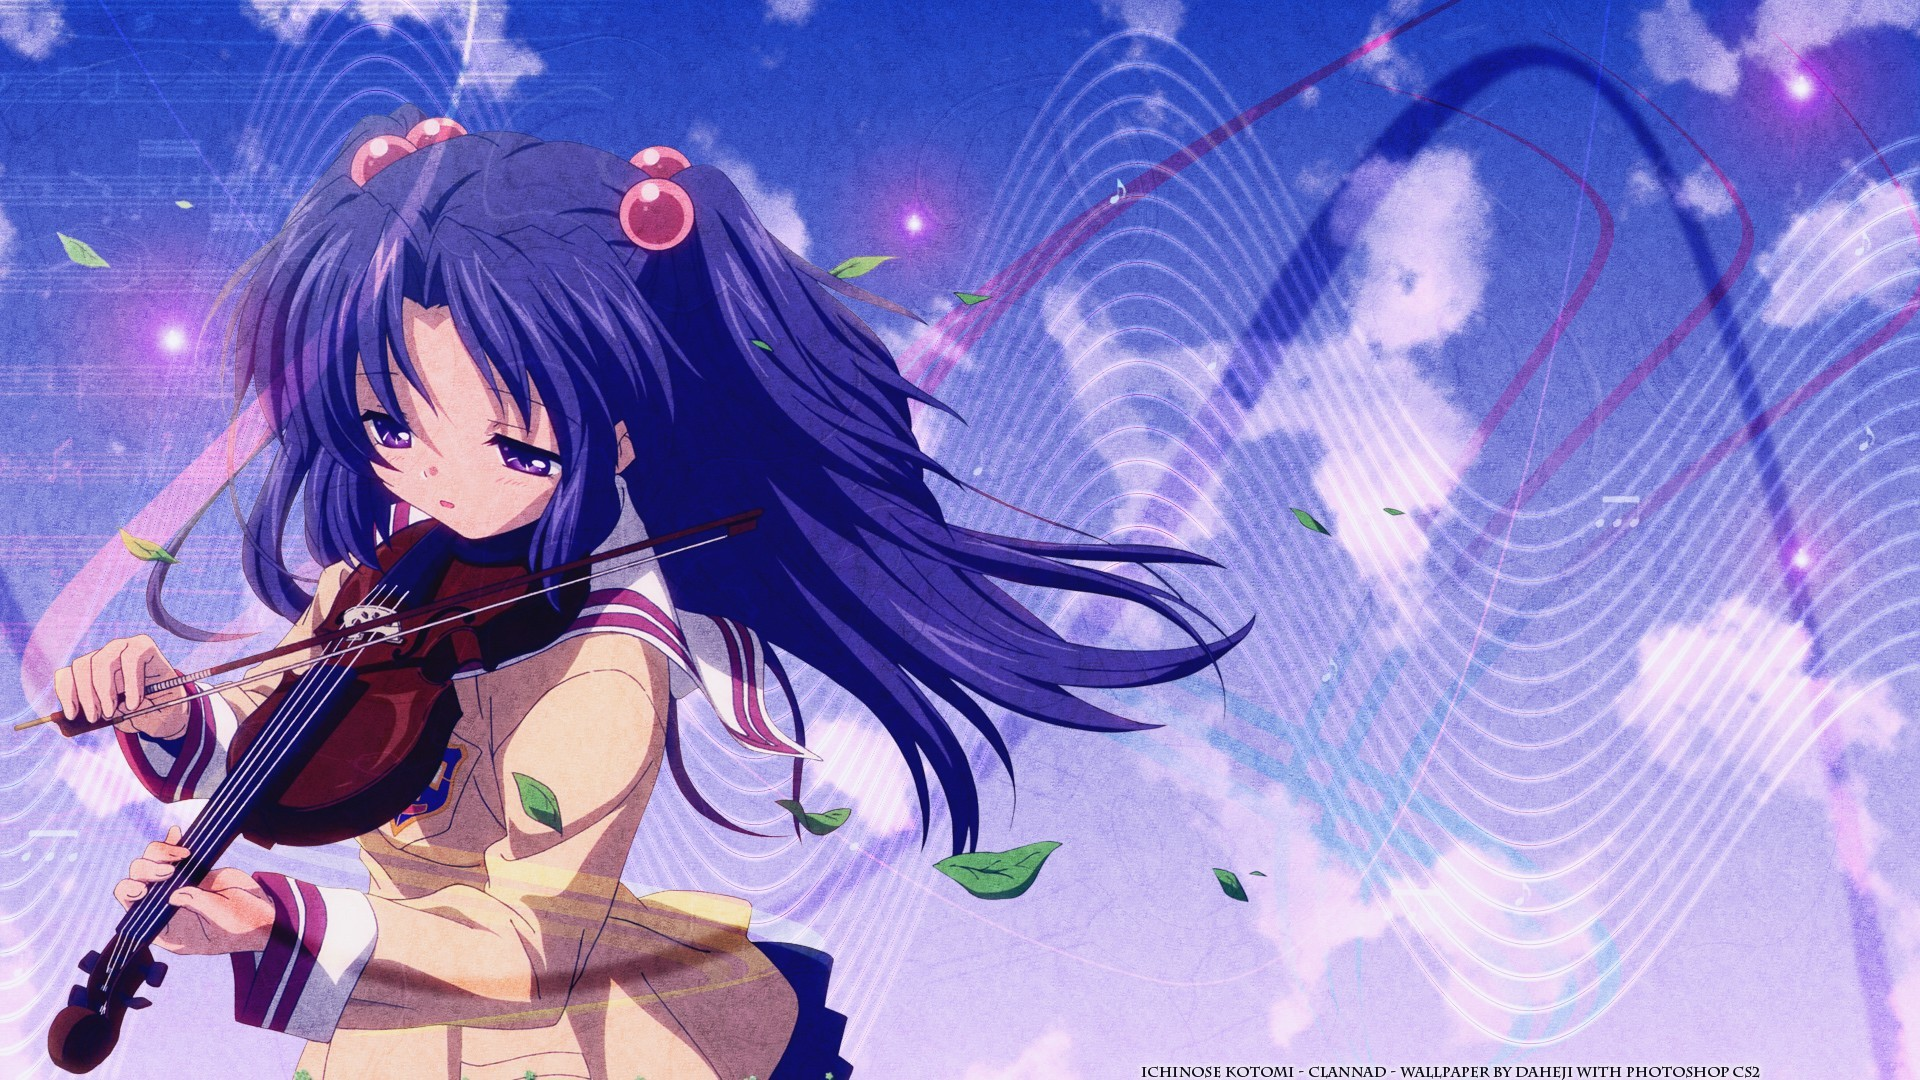 Anime Wallpaper Cherry Blossom Girl Clannad Wallpaper Iphone 69 Images